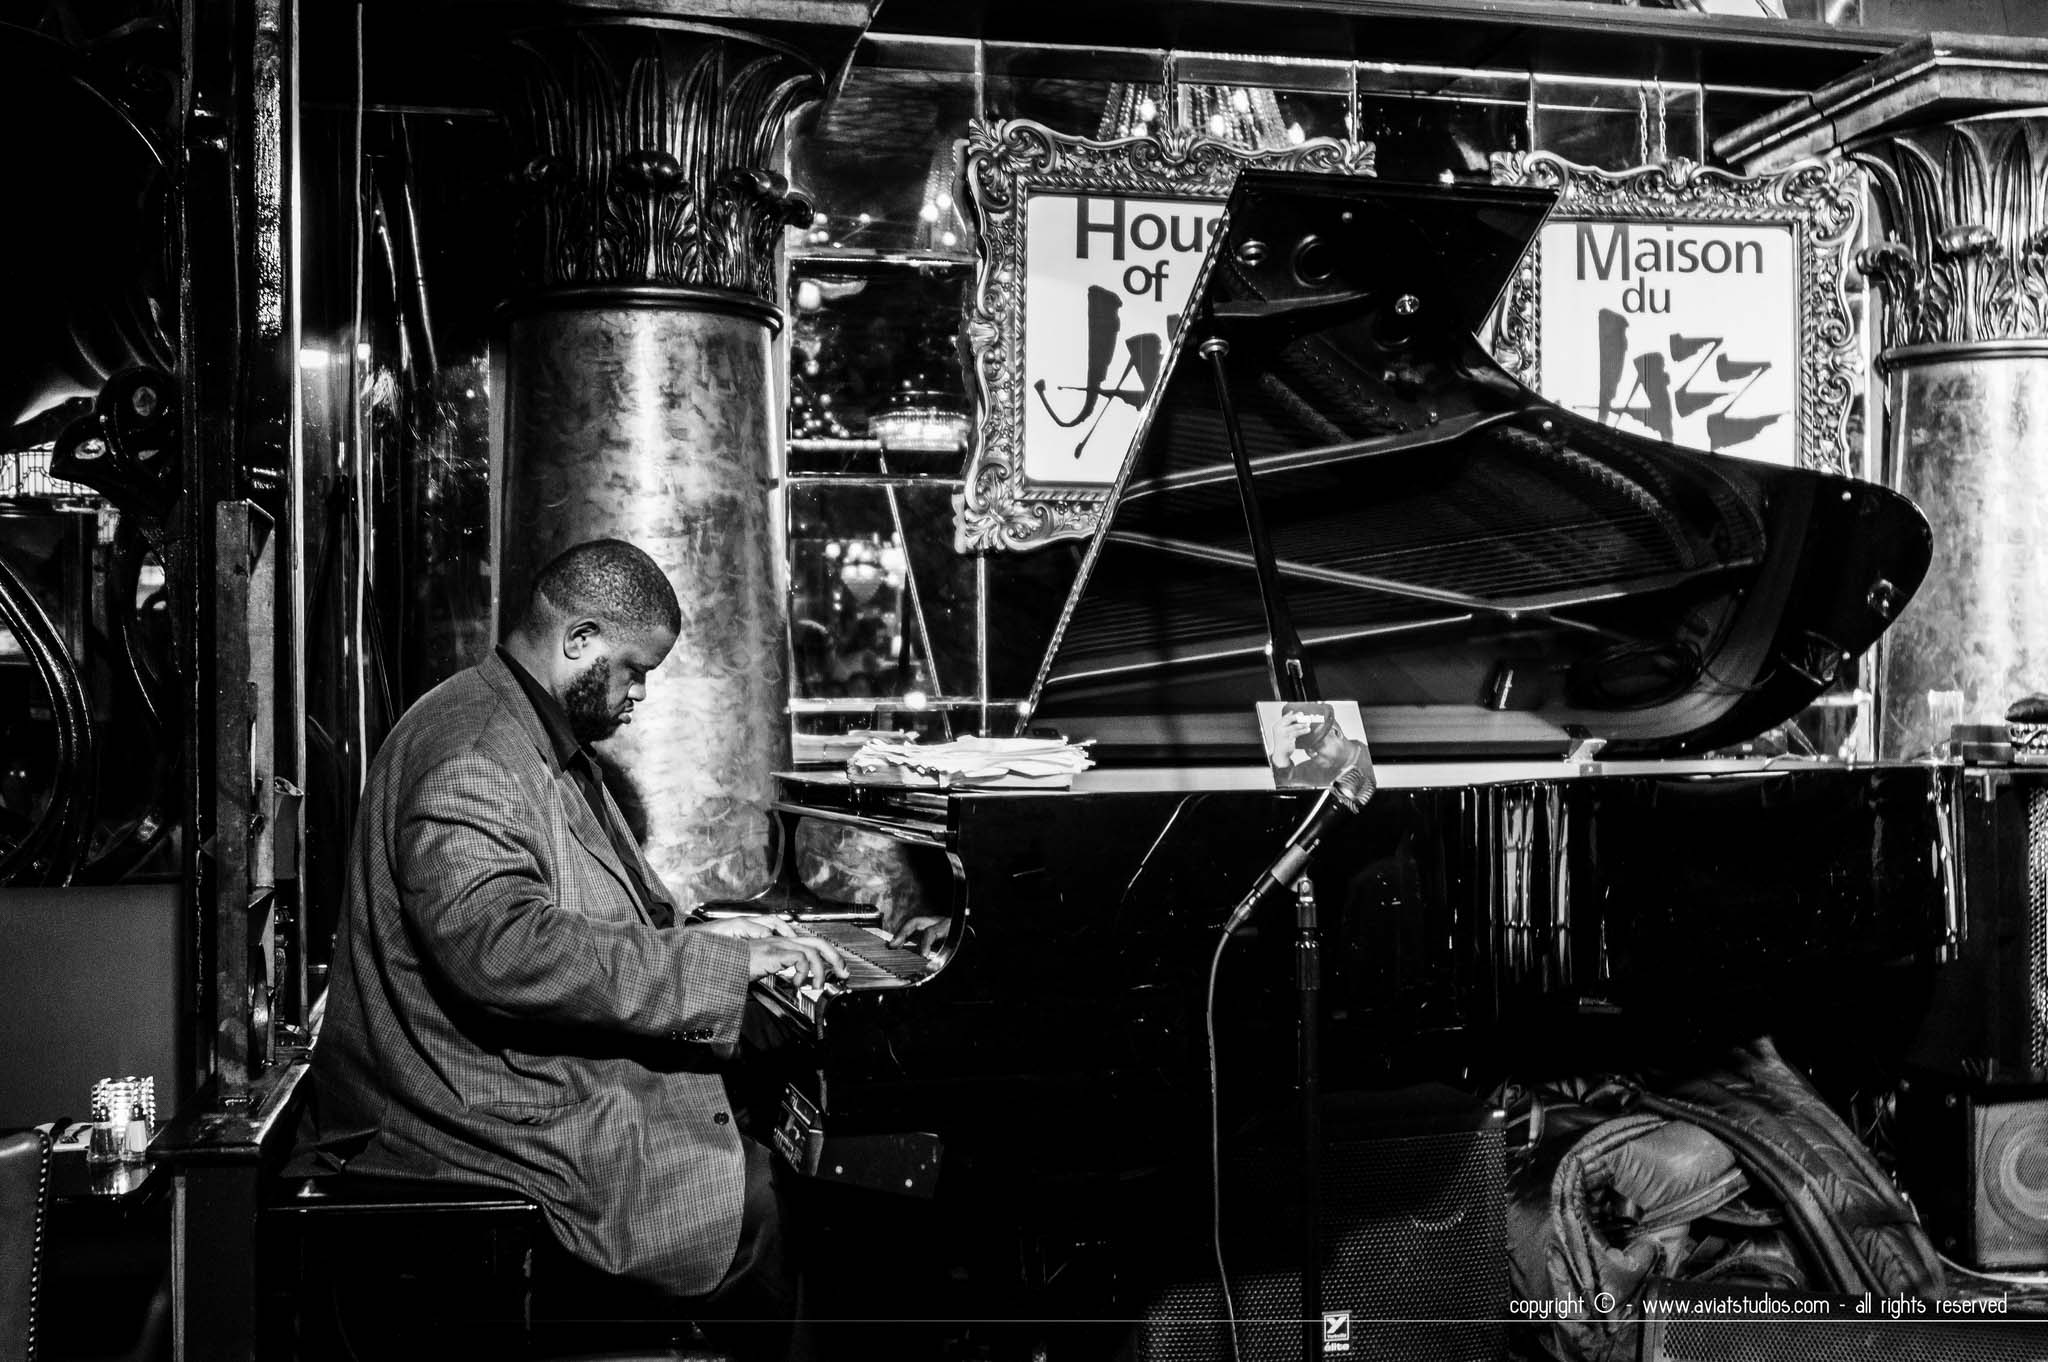 Un pianiste en train de jouer à House of Jazz